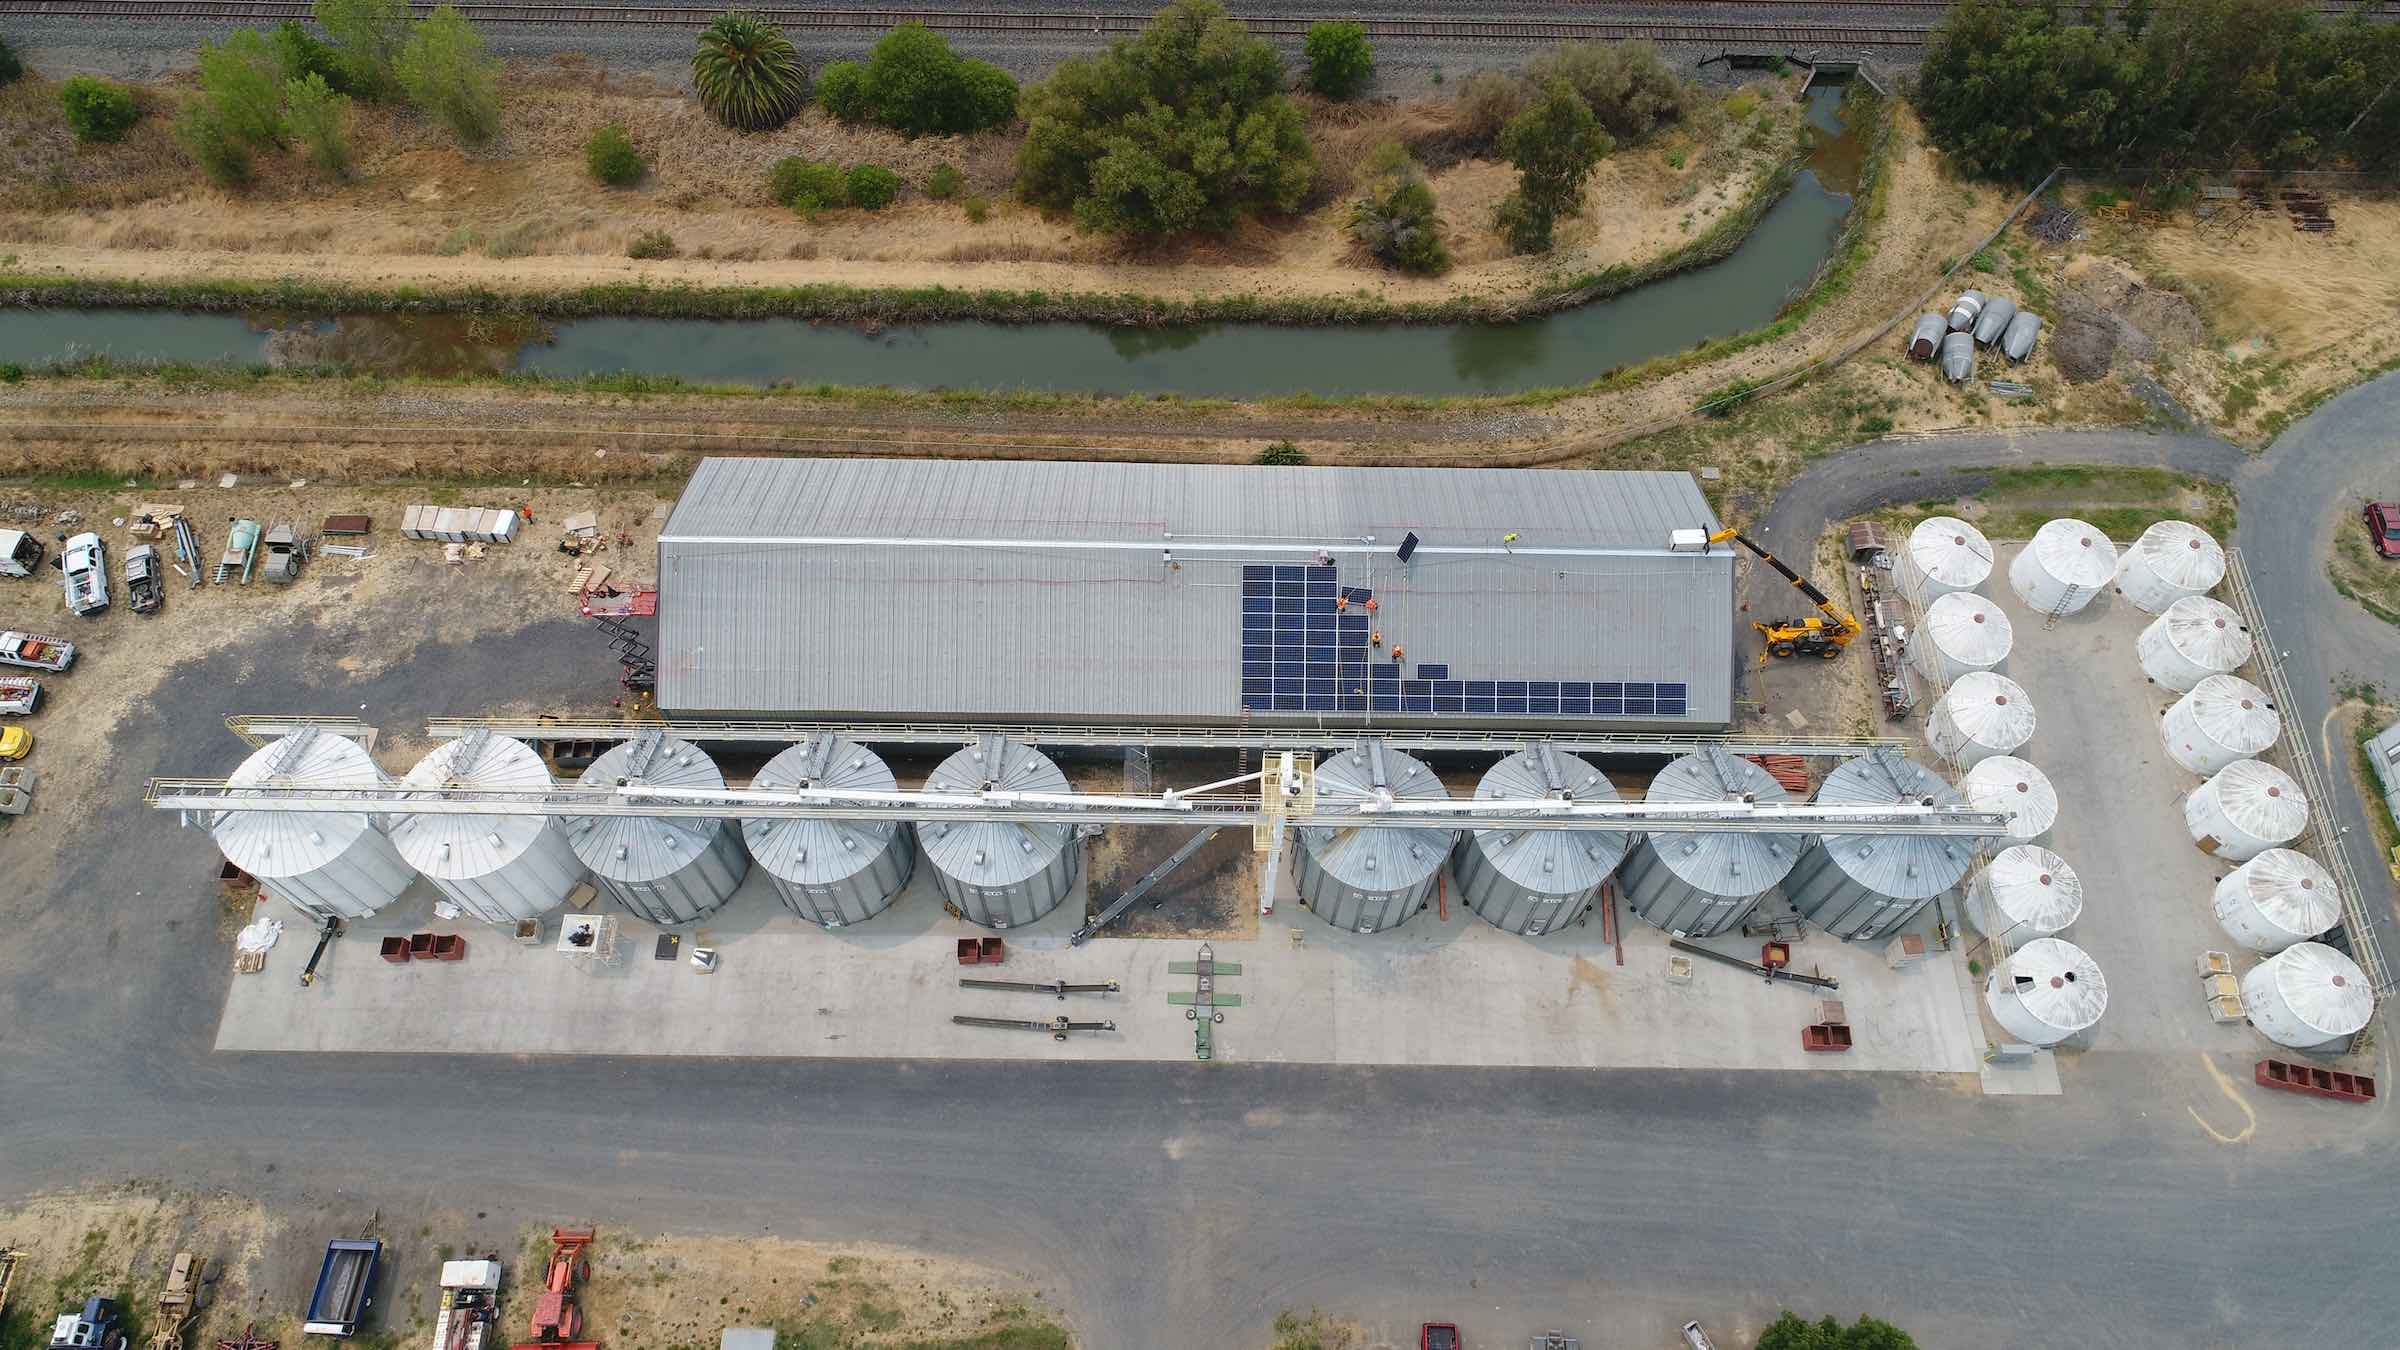 Solar panels are installed atop the Harvest Building at Lundberg's Drying & Storage facilities.